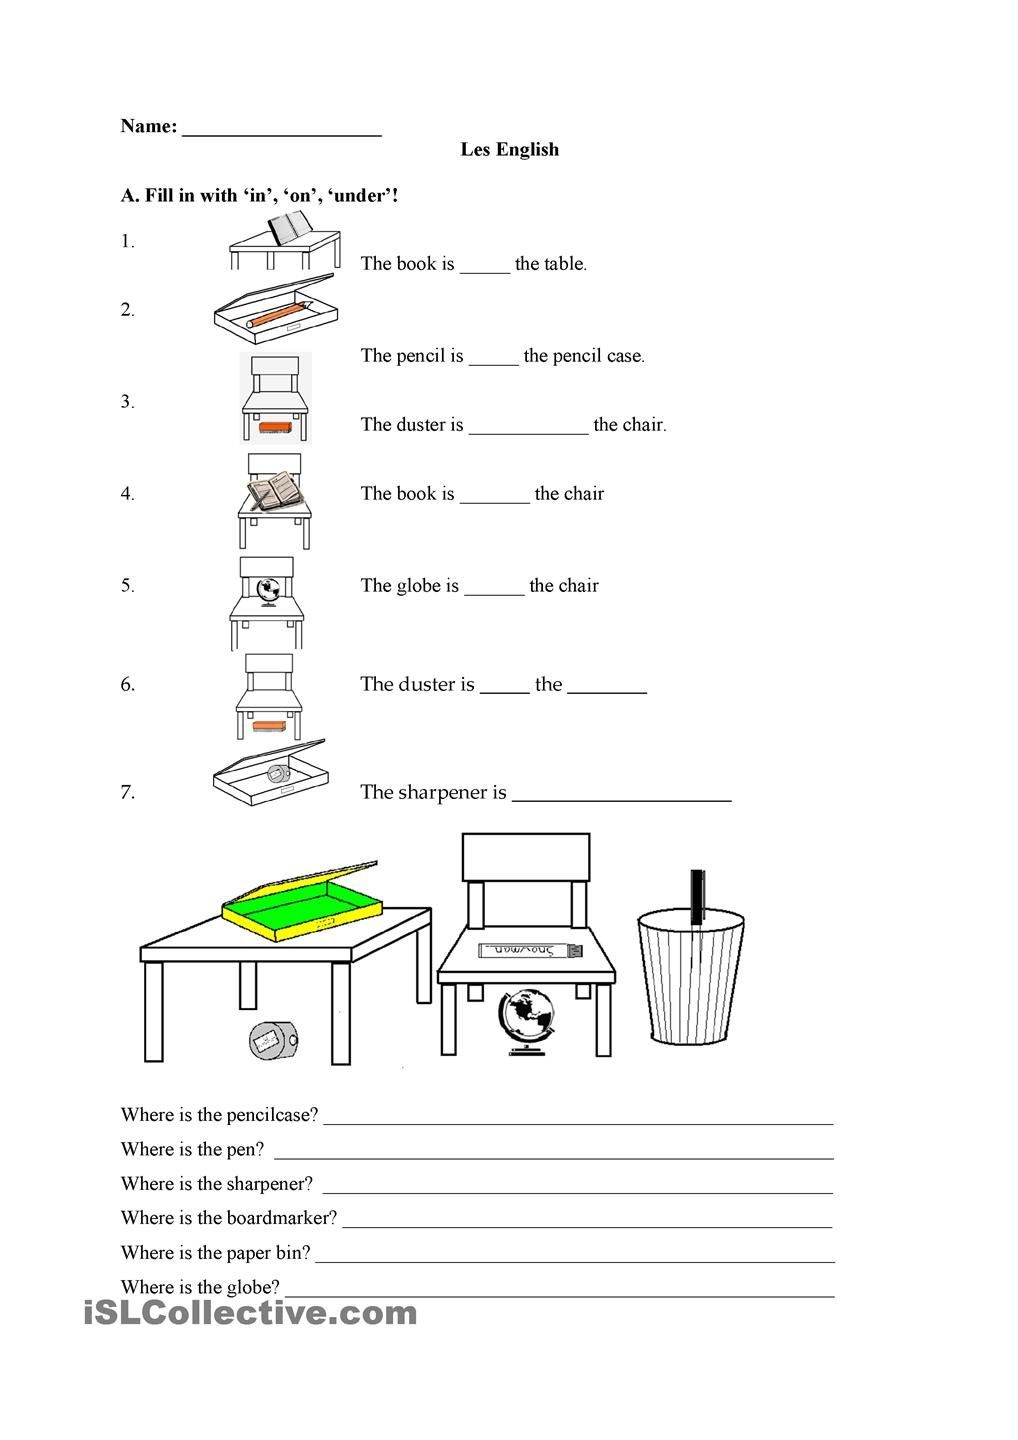 In On Under English Worksheets For Kids English Grammar Worksheets Addition Words [ 1440 x 1018 Pixel ]